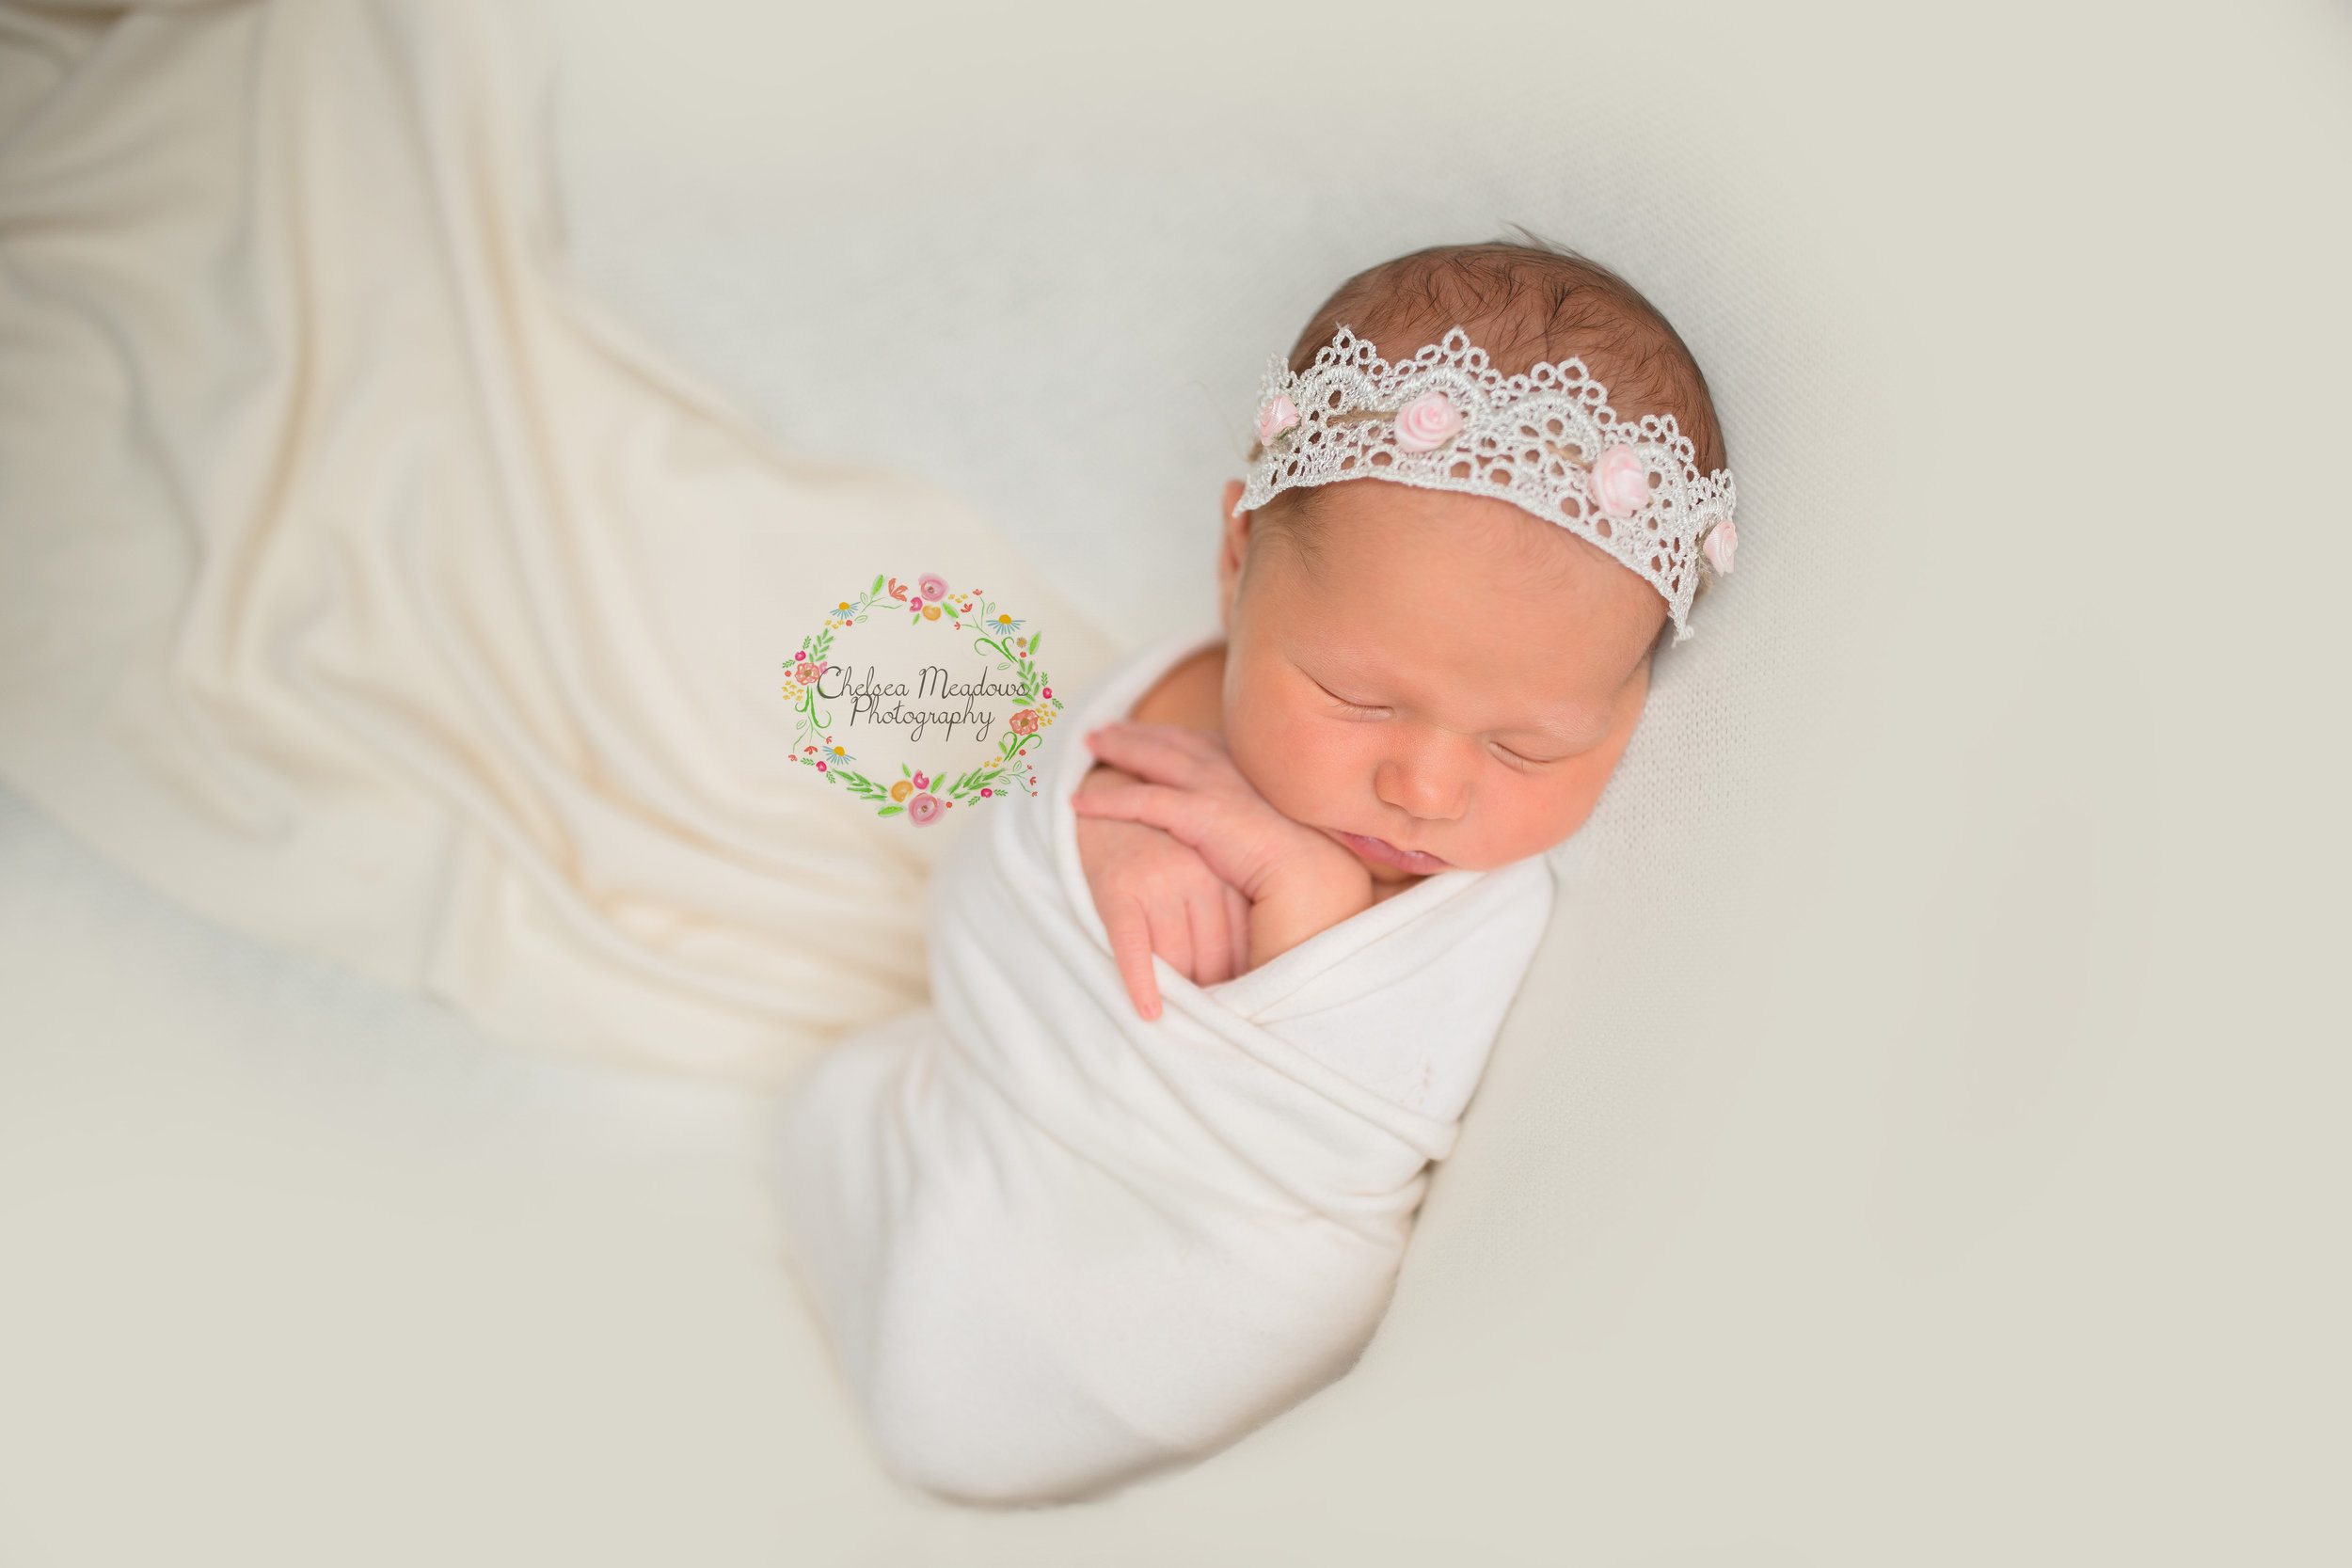 Sawyer Newborn Session - Nashville Newborn Photographer - Chelsea Meadows Photography (30).jpg